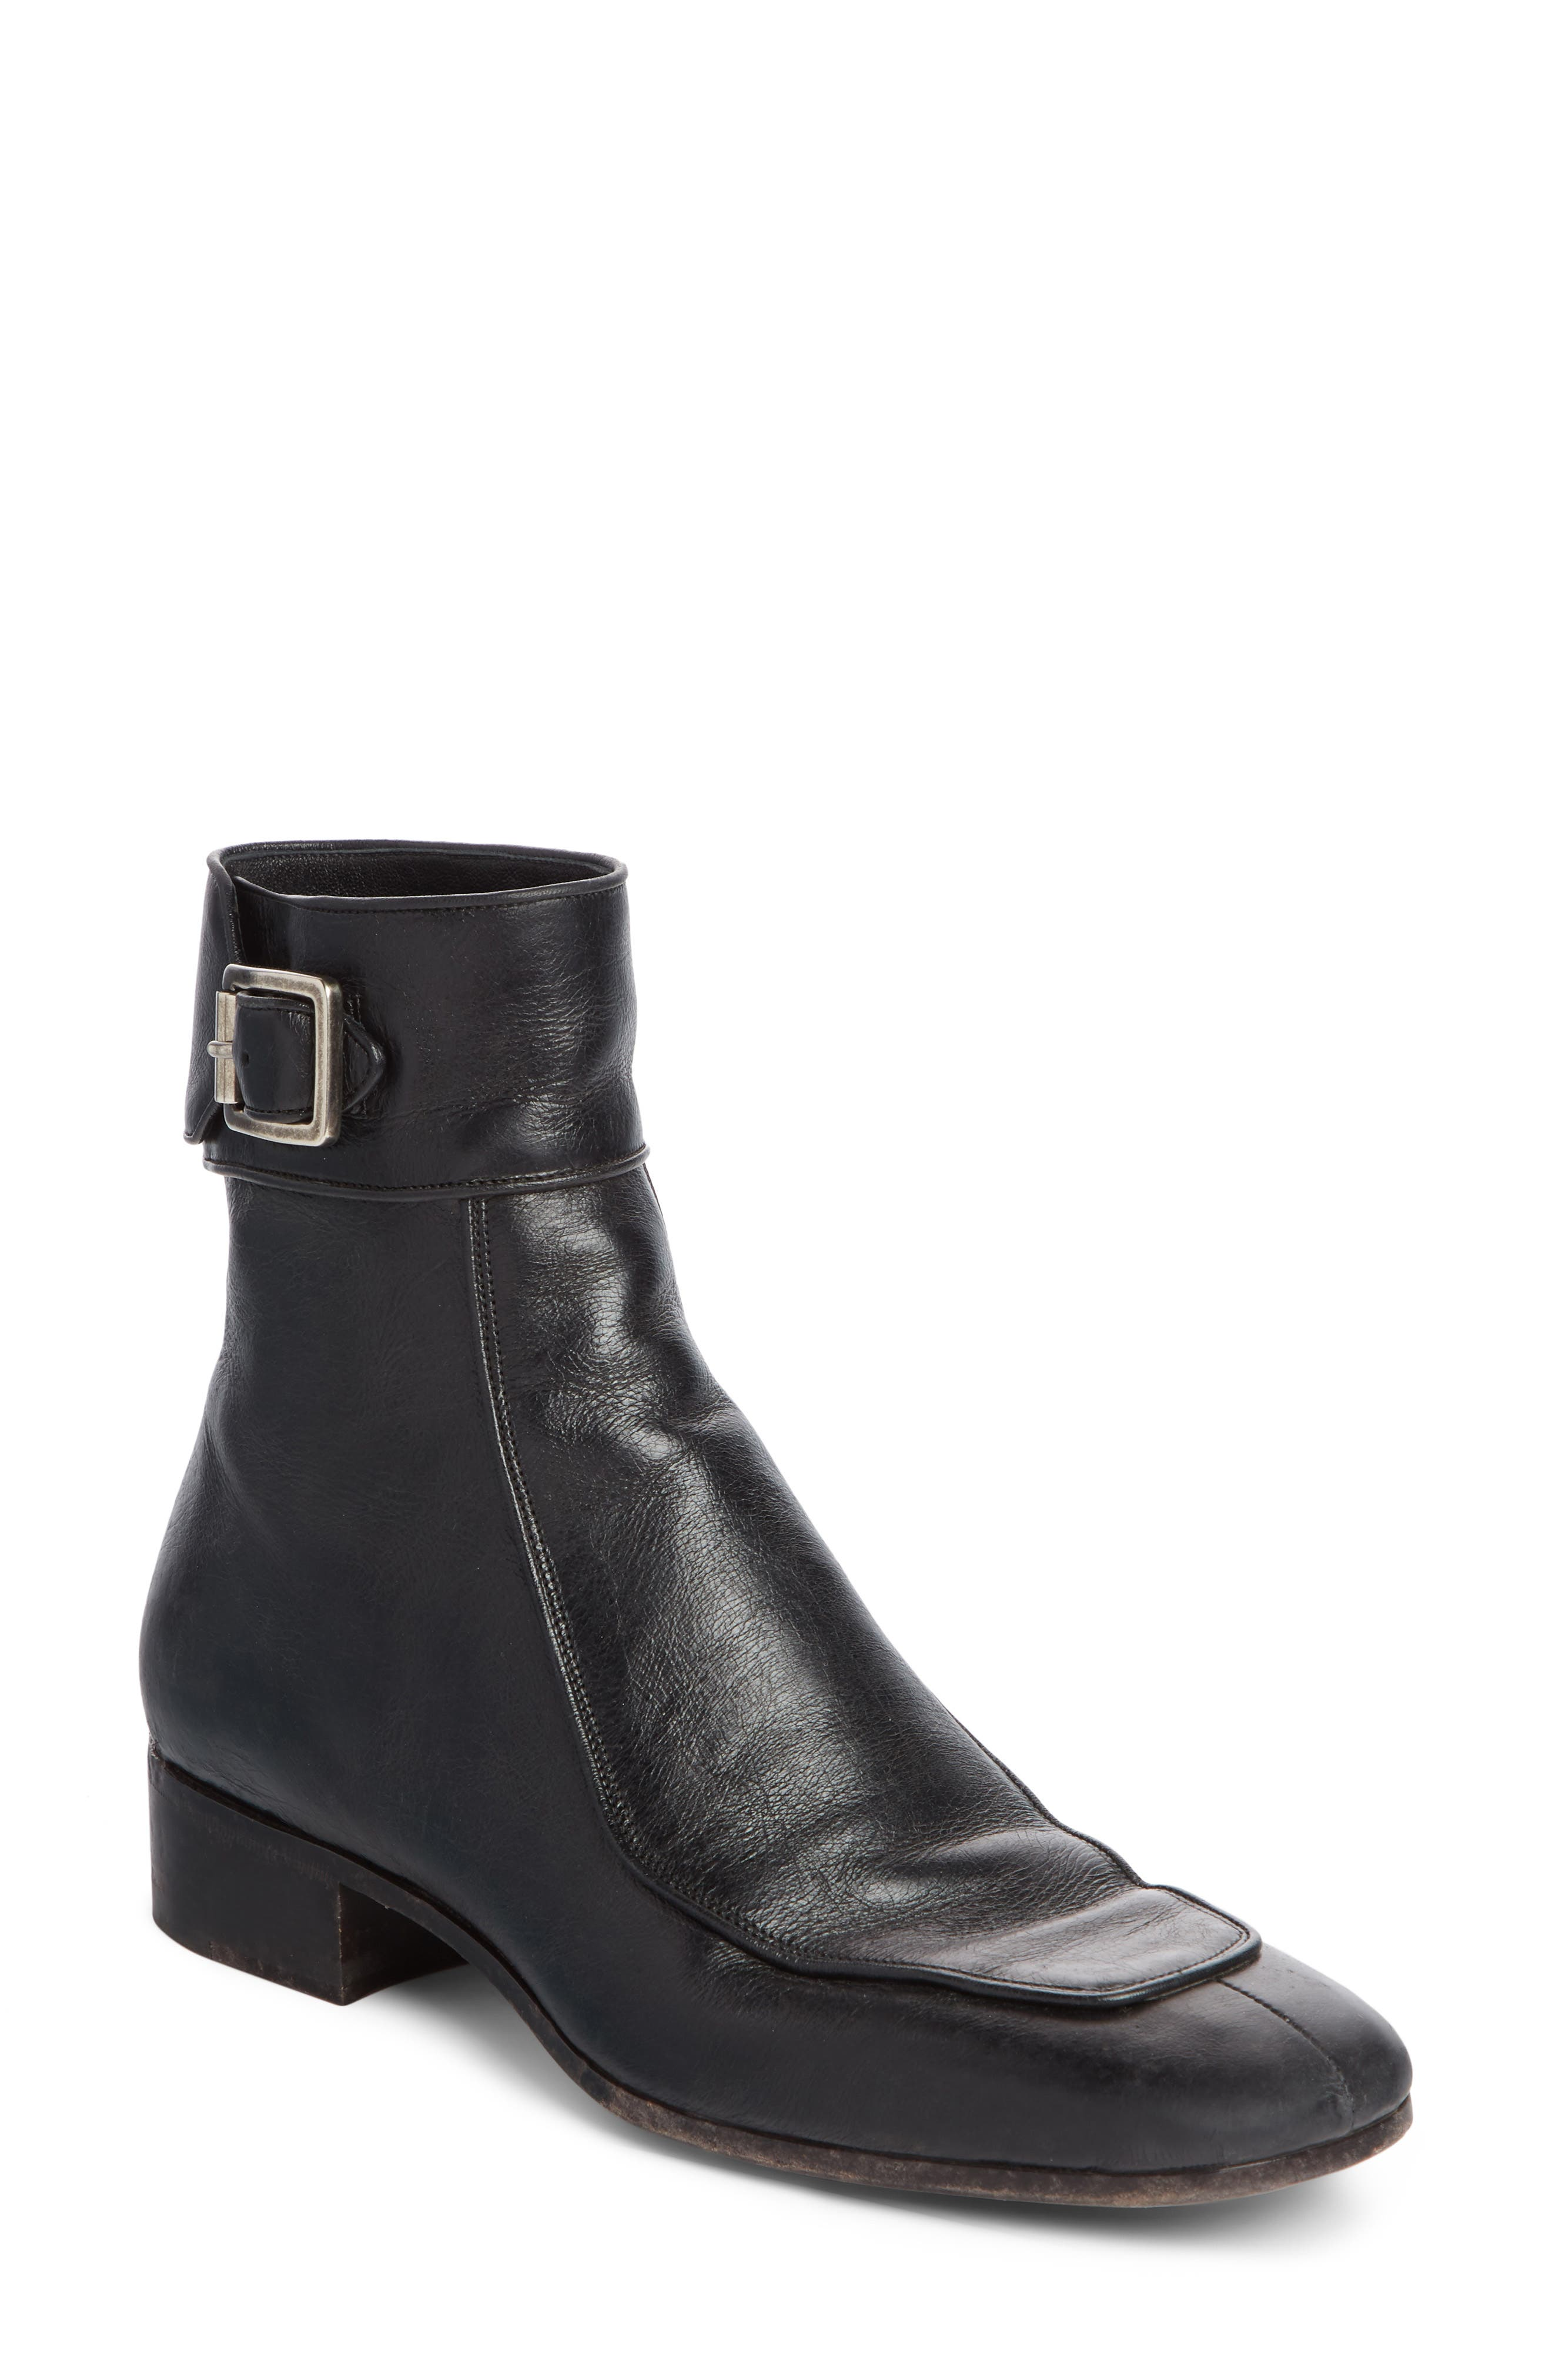 Miles Distressed Leather Booties in Black Leather